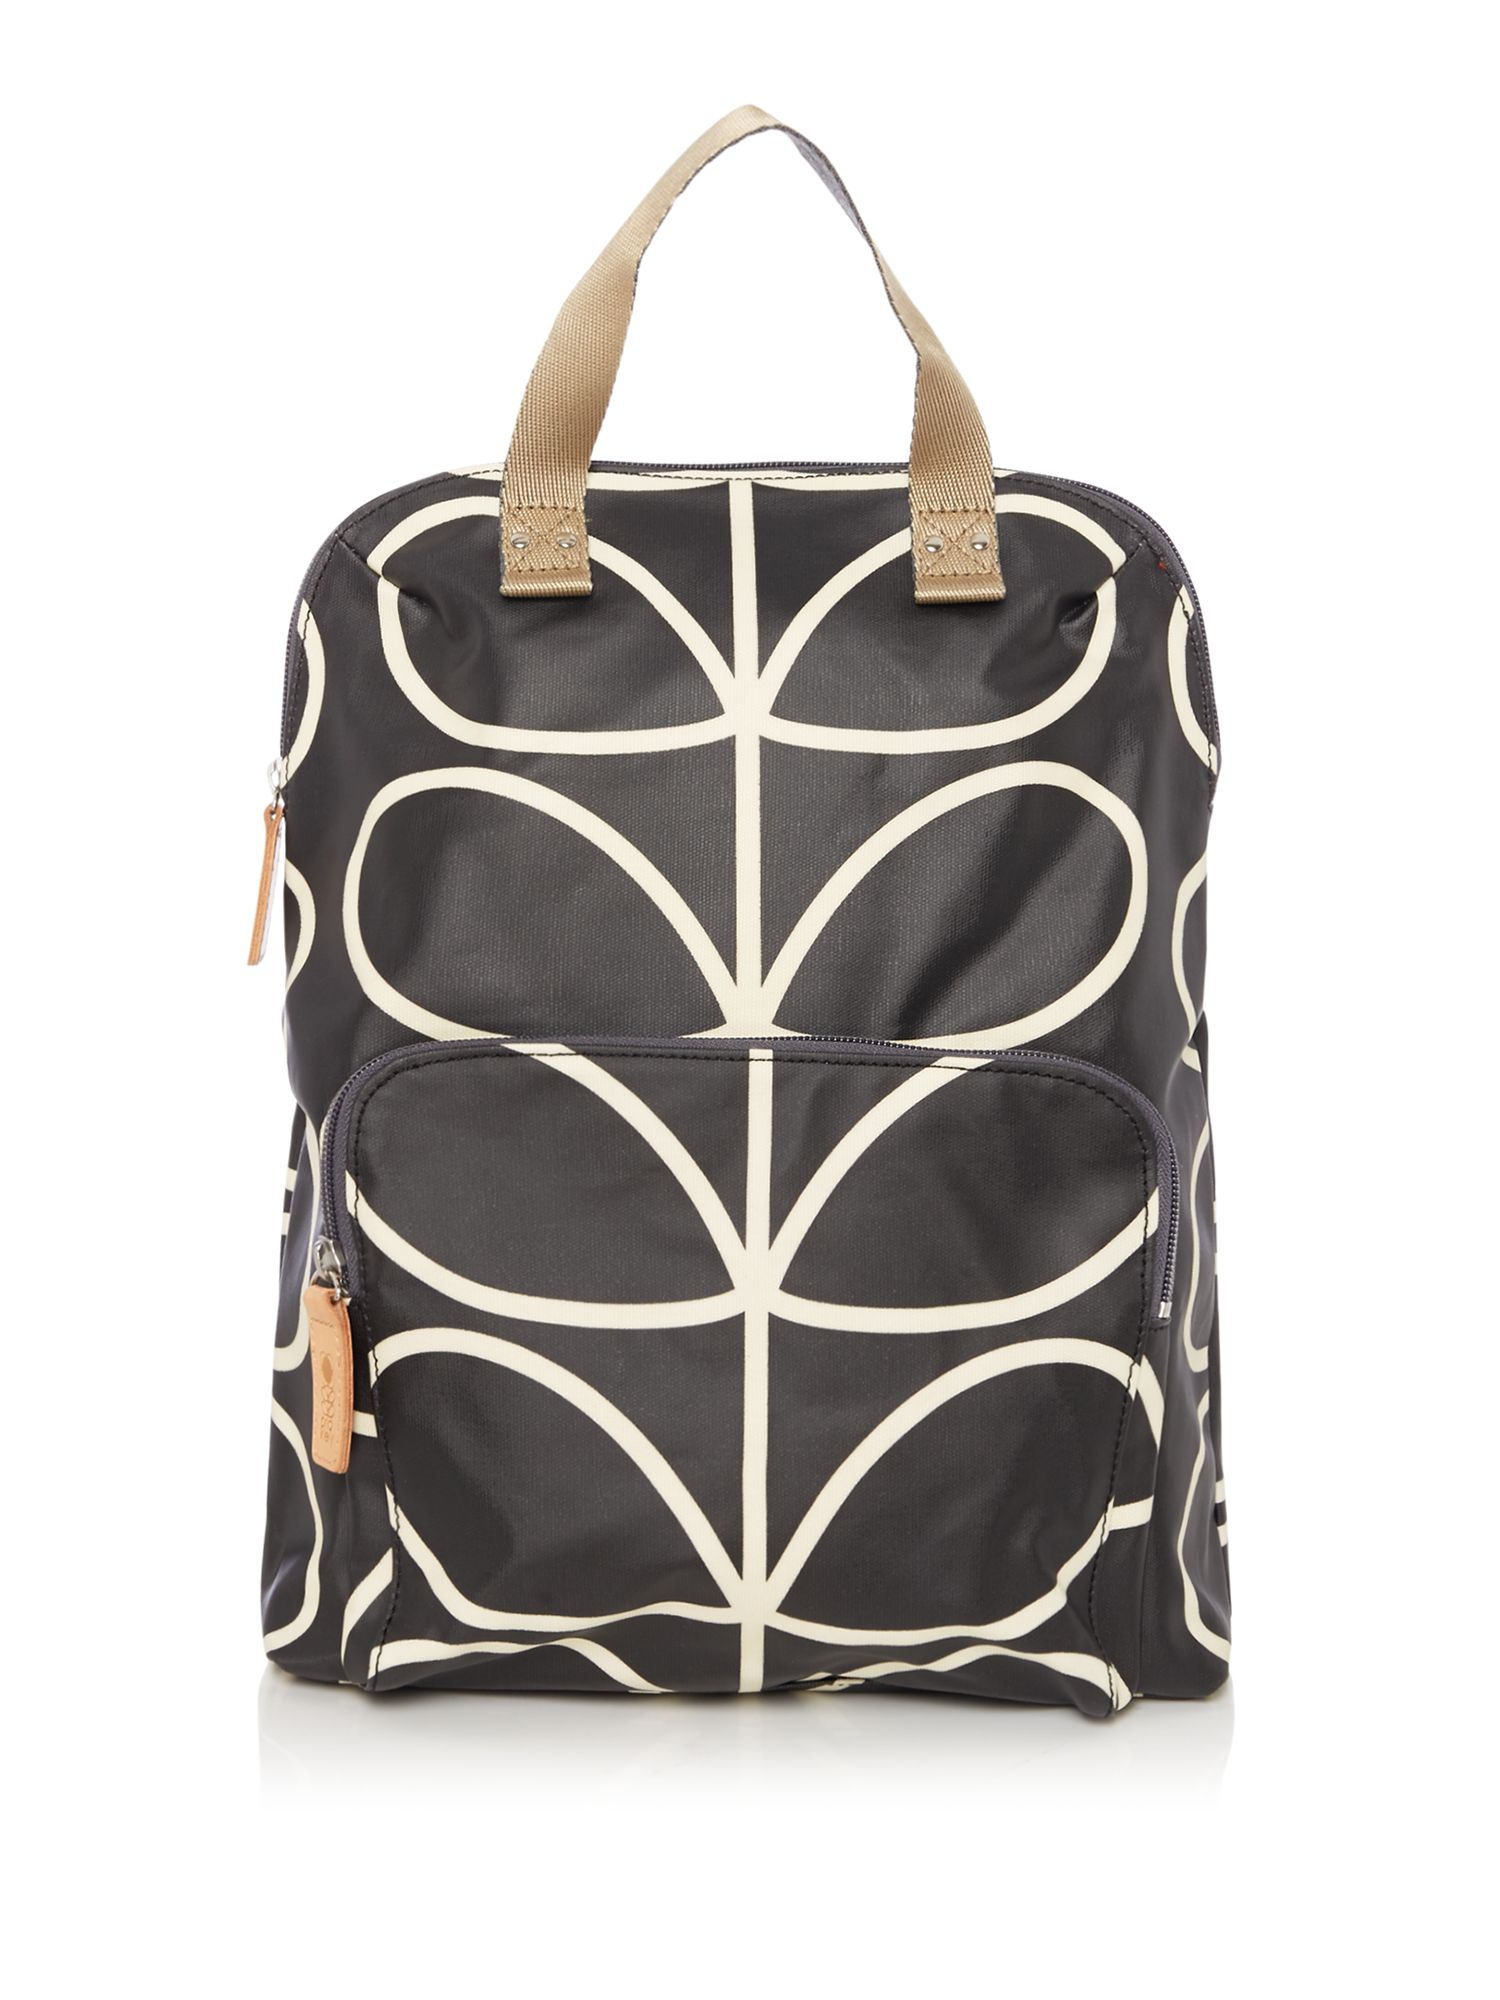 Orla Kiely Backpack tote, Black